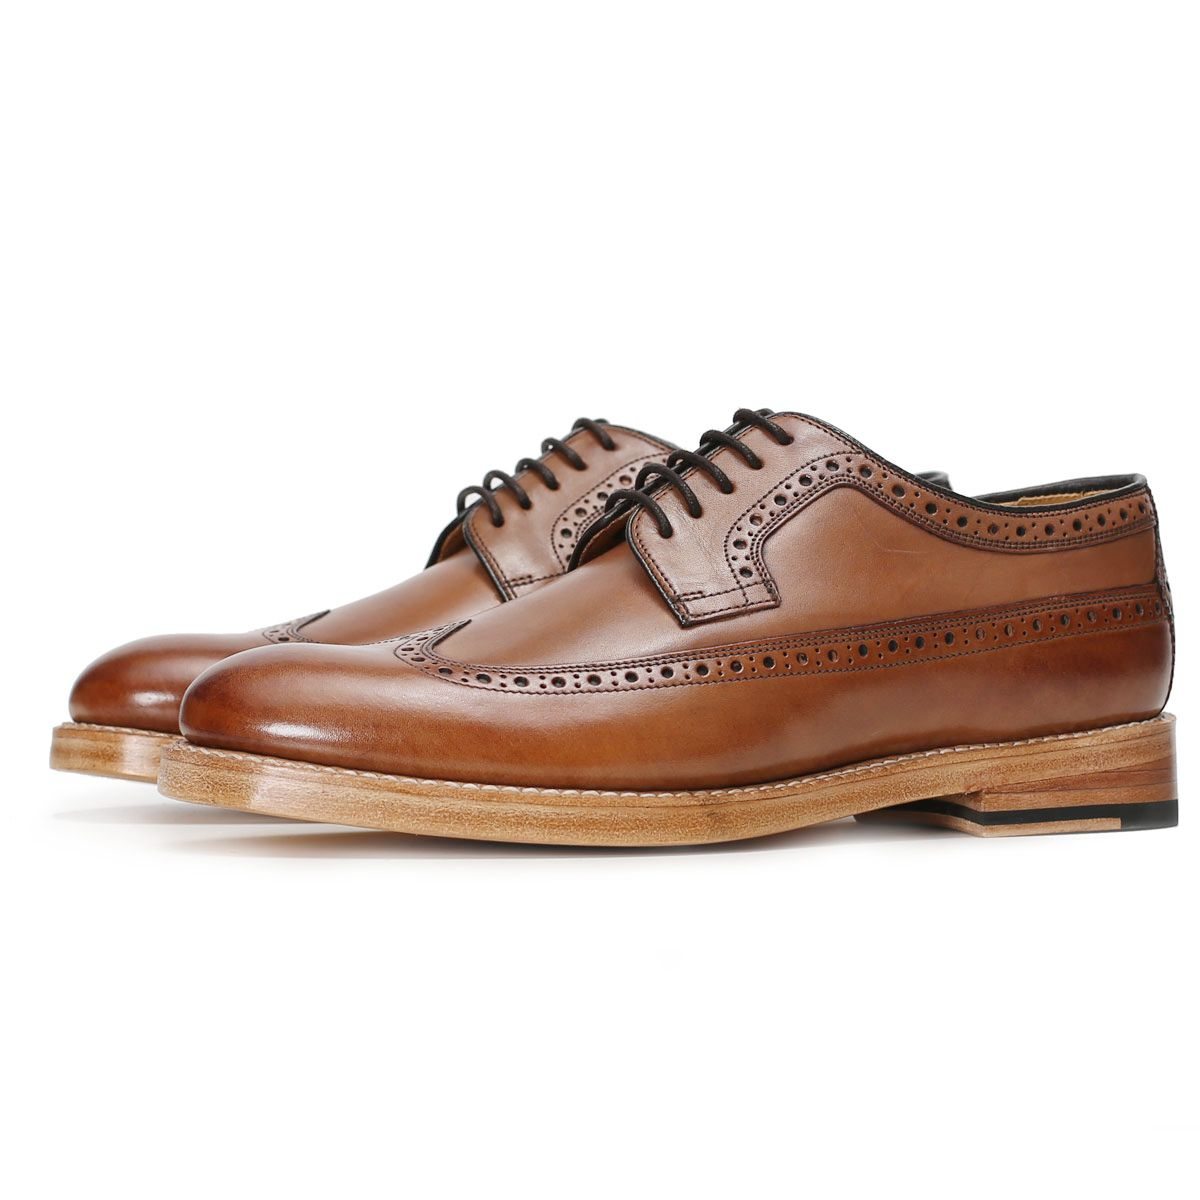 Oliver Sweeney Pembroke Dark Tan - Calf Leather Derby Brogue